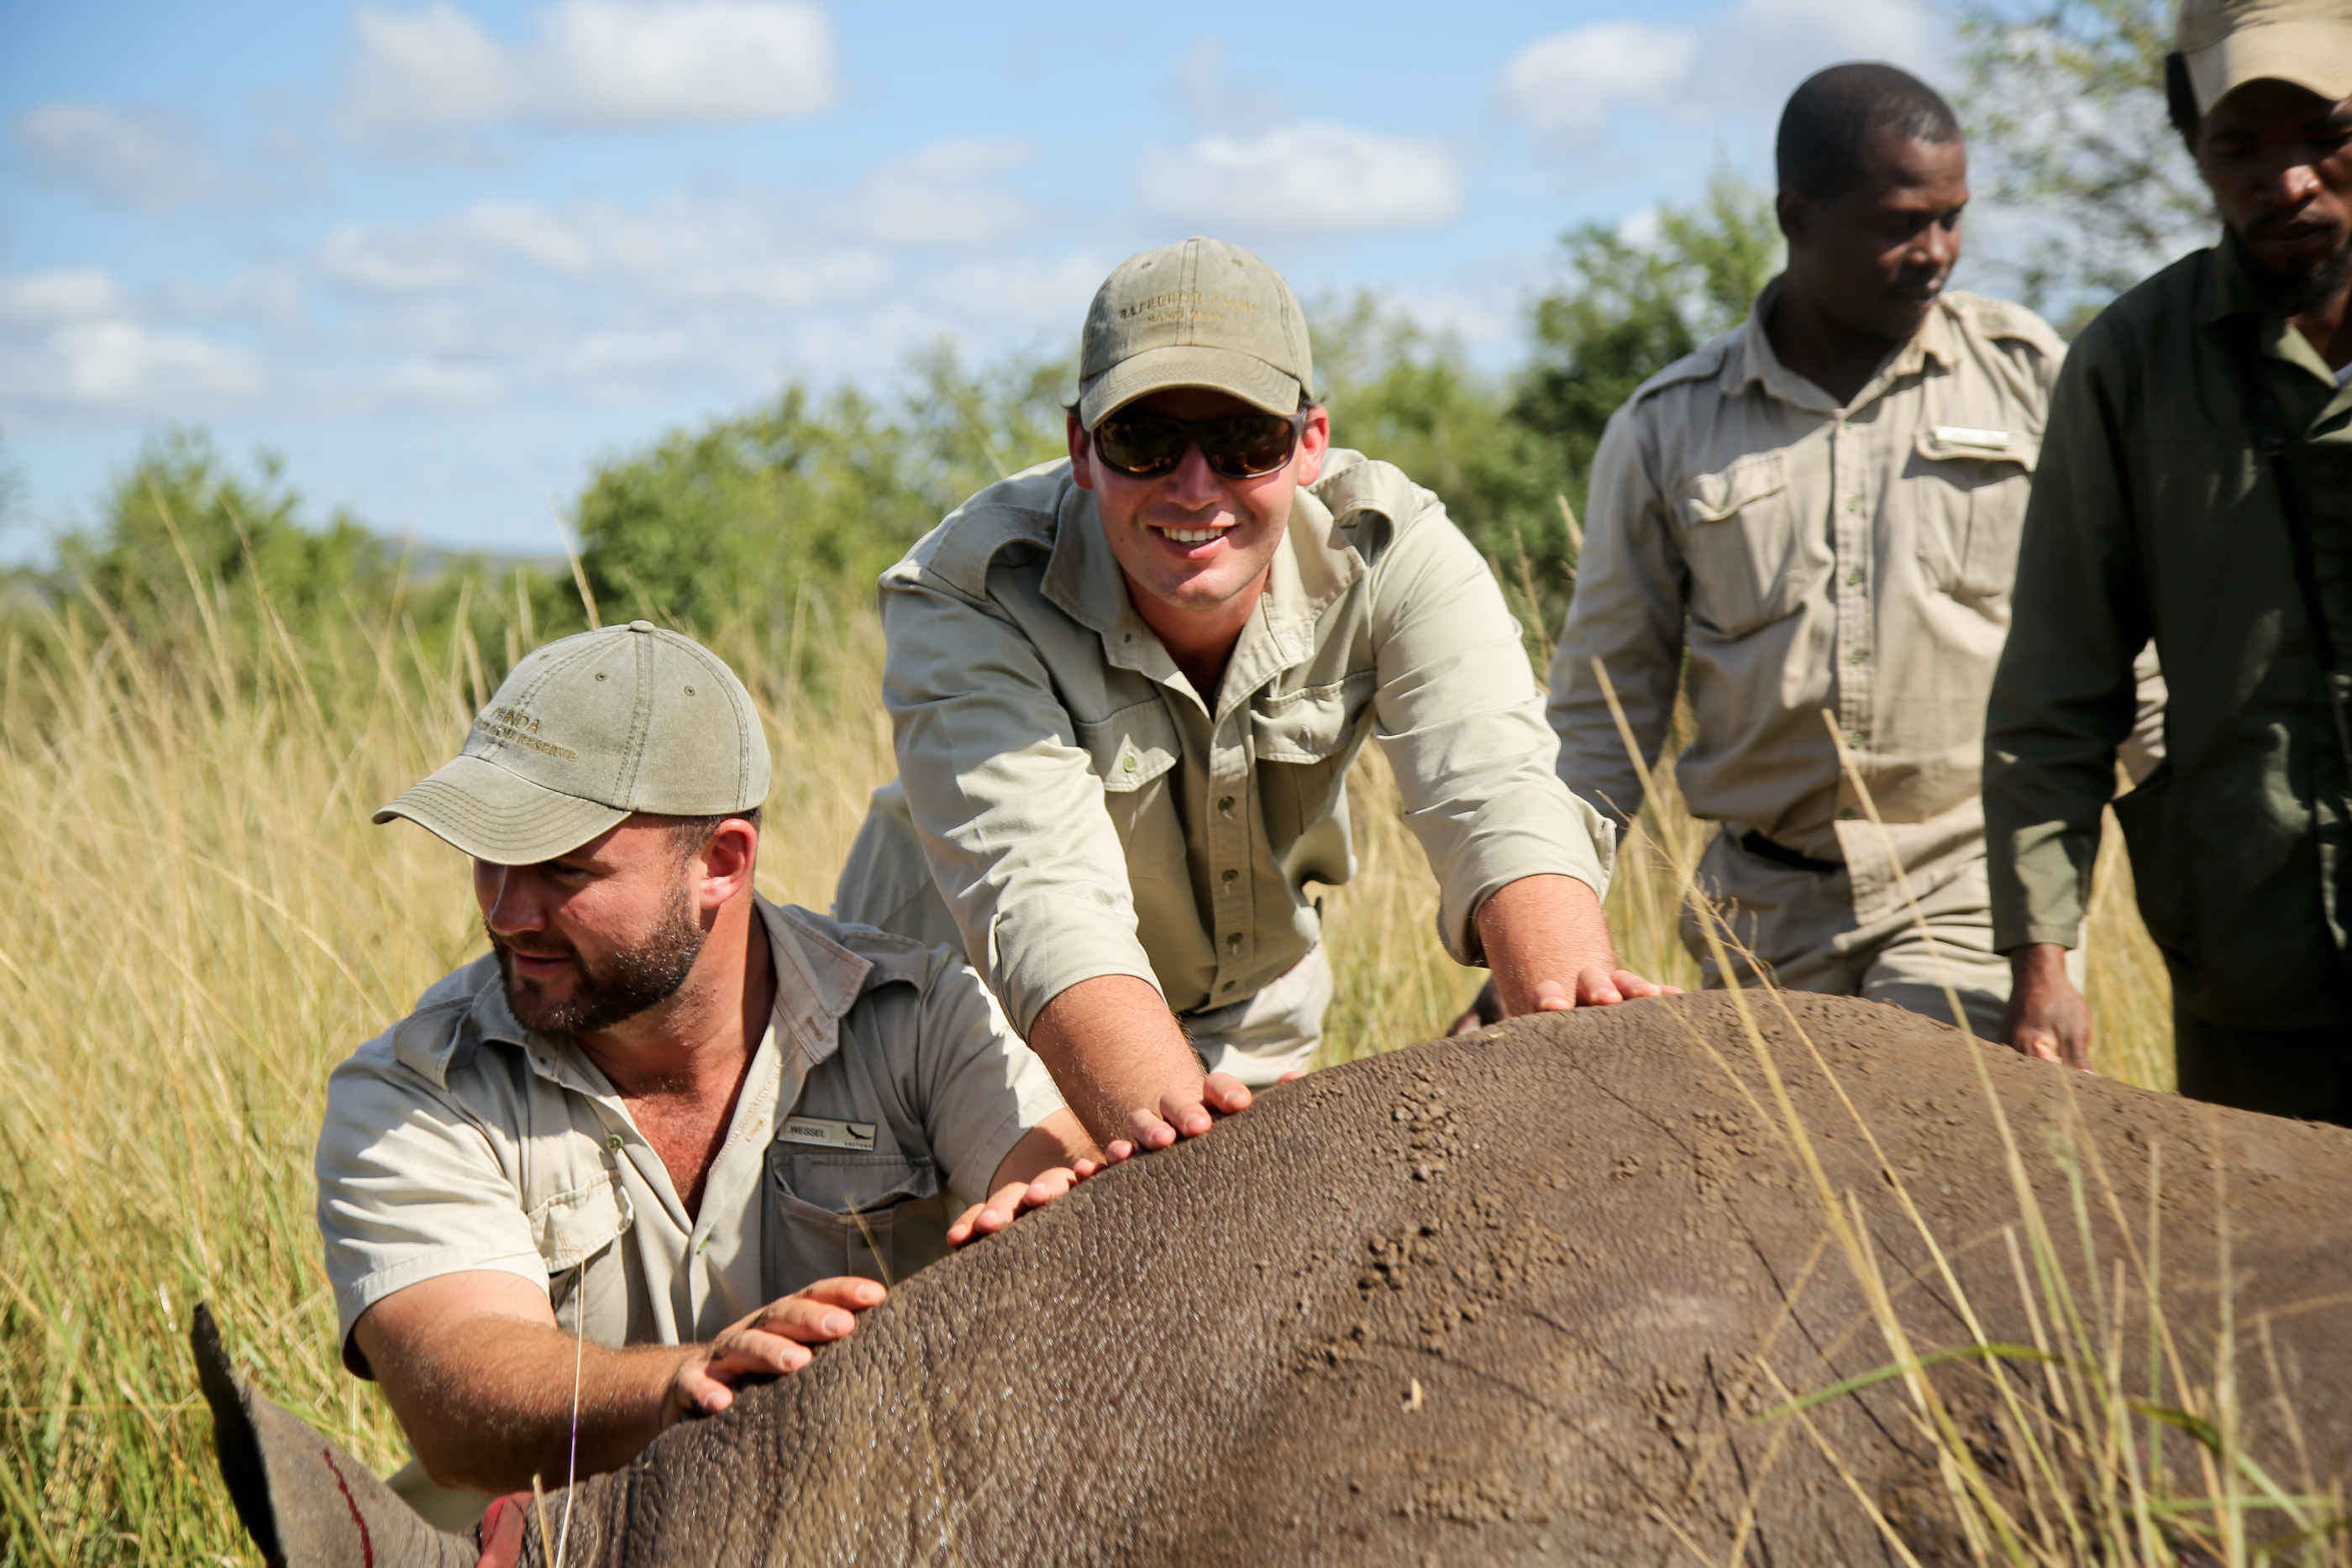 Rhino-dehorning-and-conservation-at-andBeyond-Phinda-Private-Game-Reserve-(3).jpg